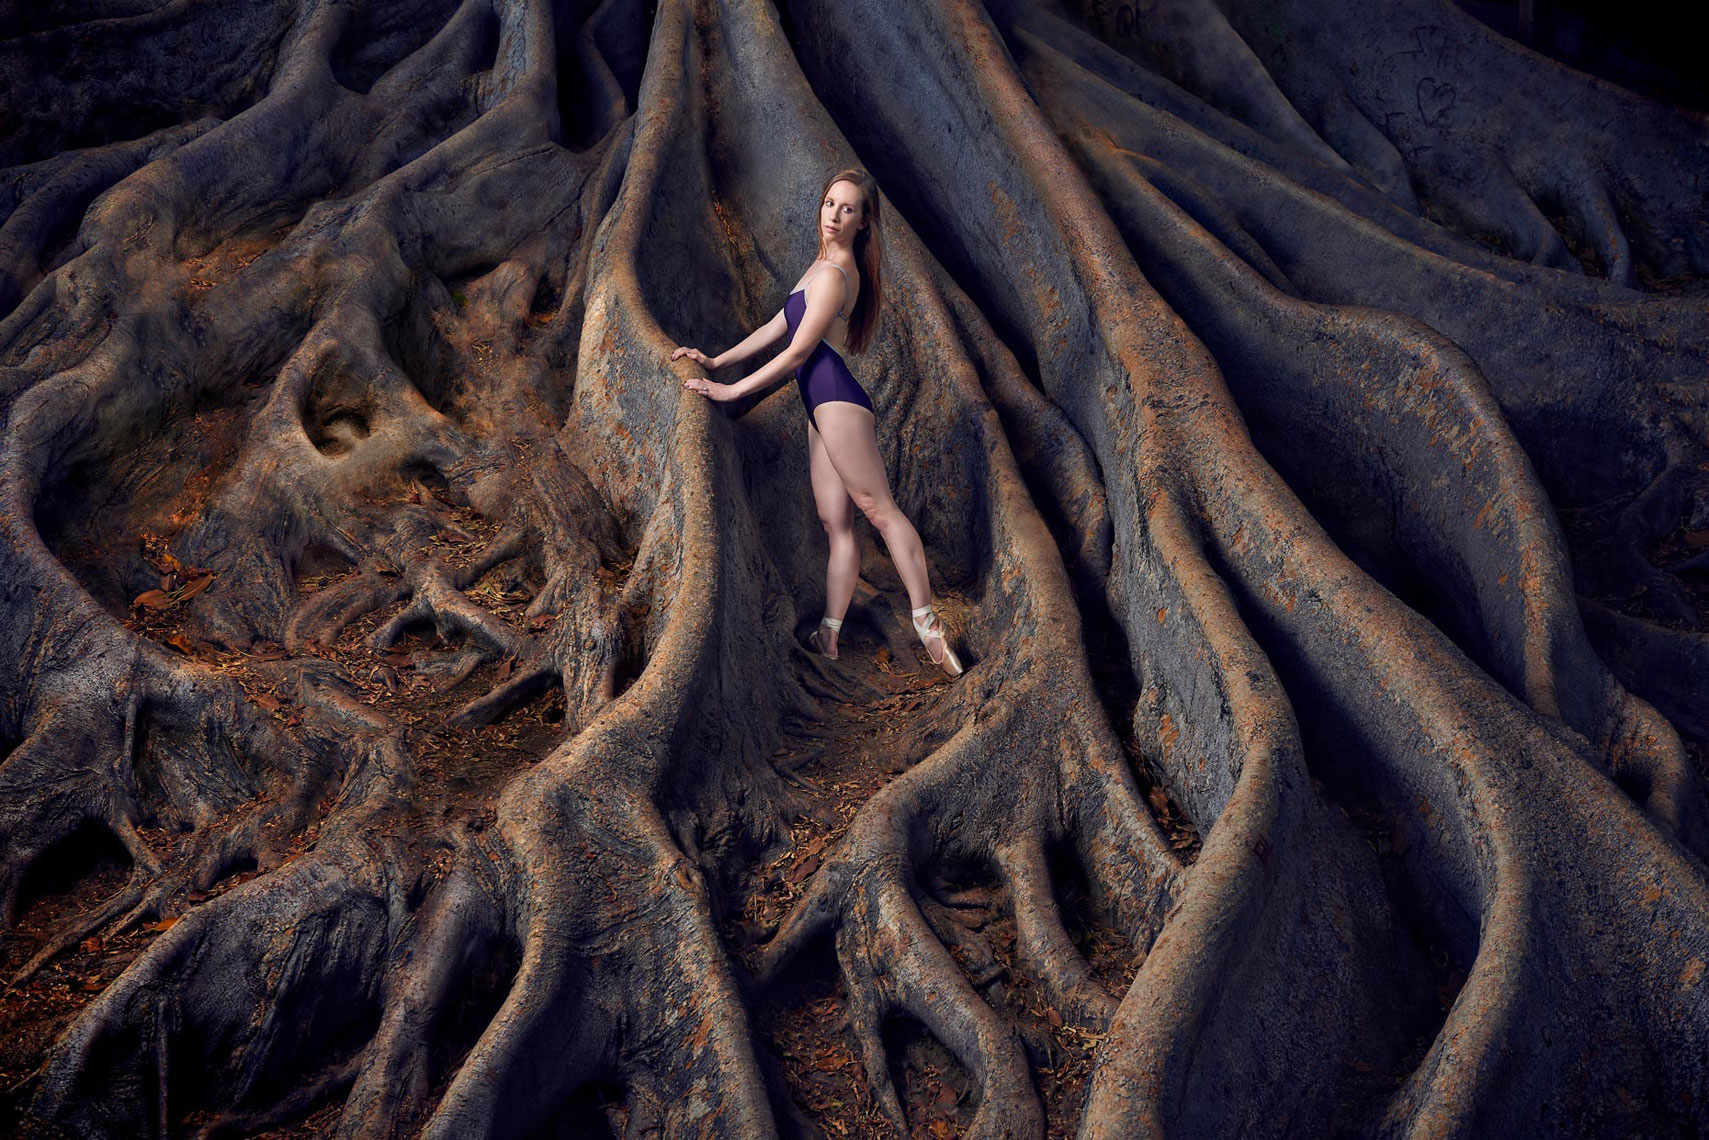 City Ballet of San Diego ballerina posing by tree in Balboa park.